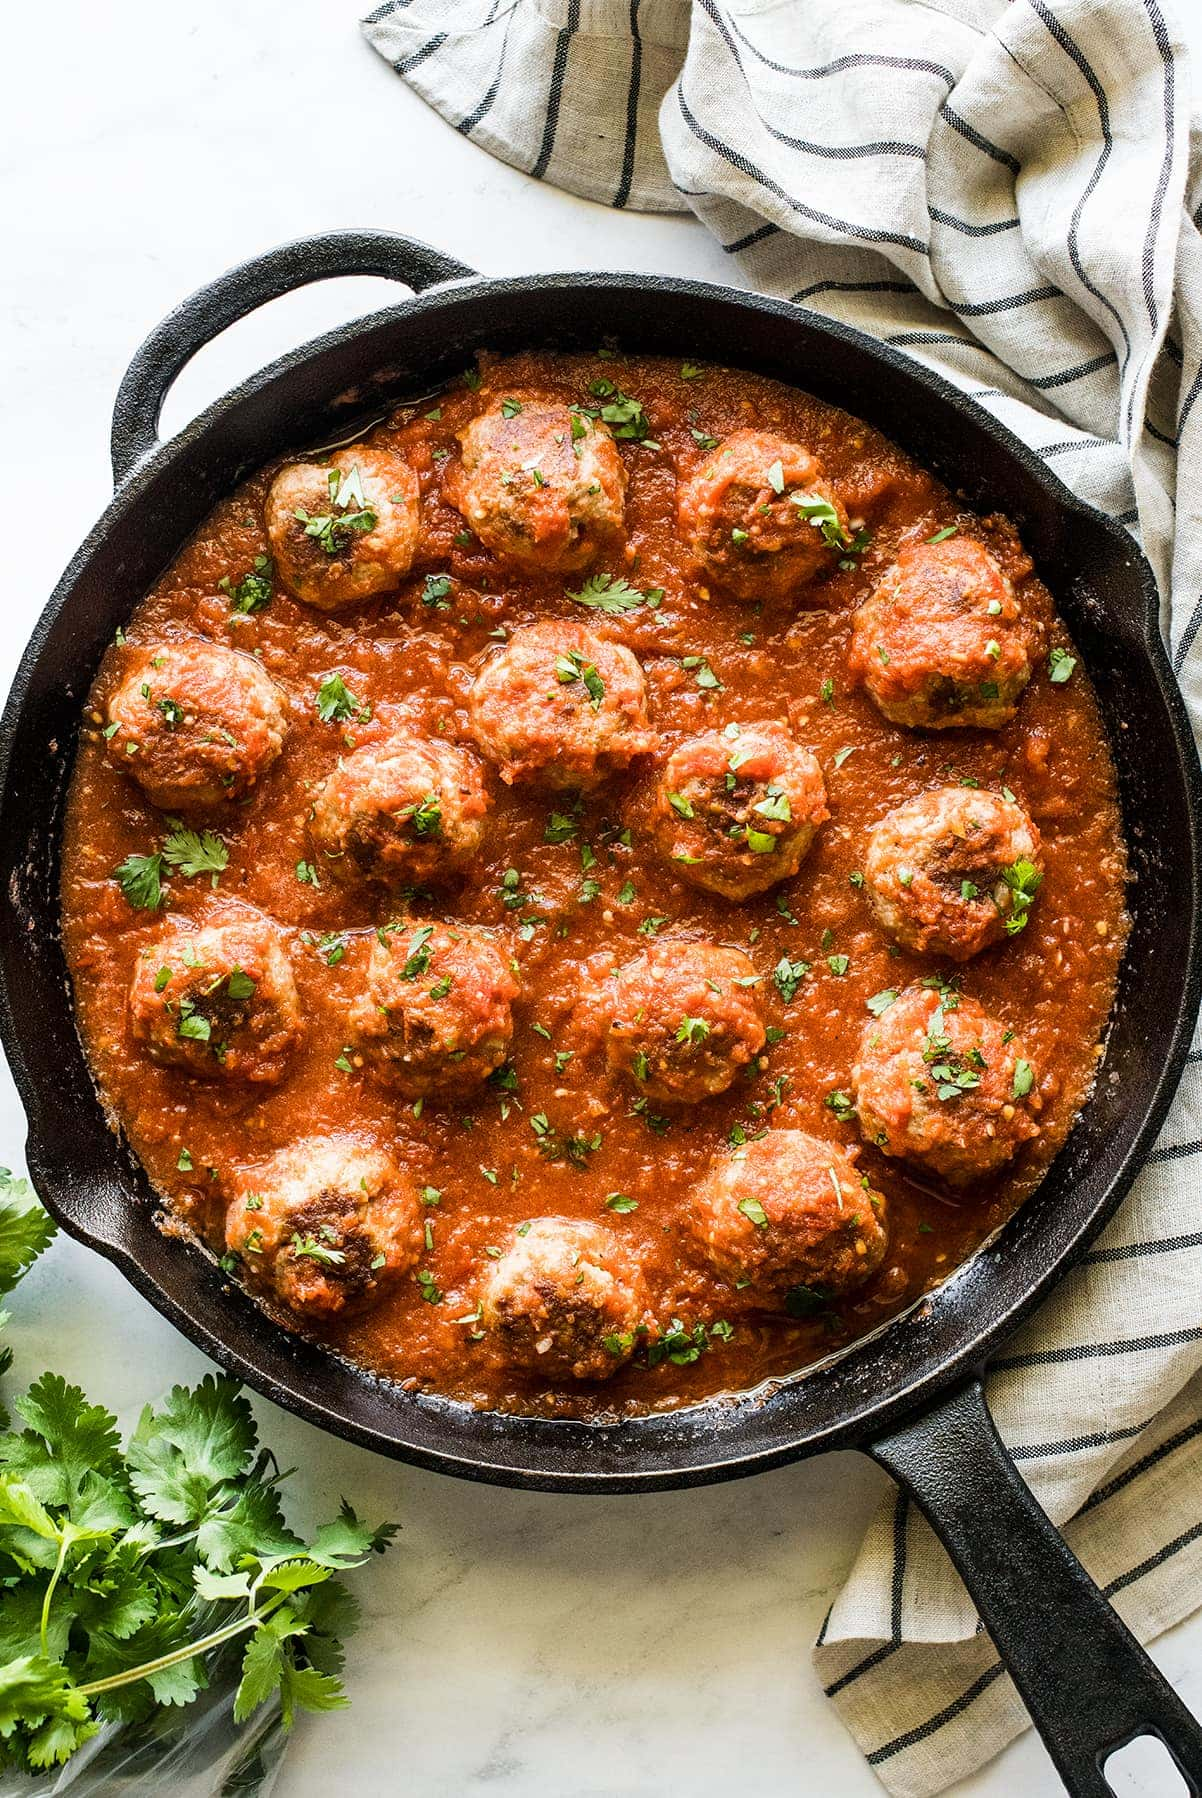 Mexican meatballs in a skillet with chipotle tomato sauce.